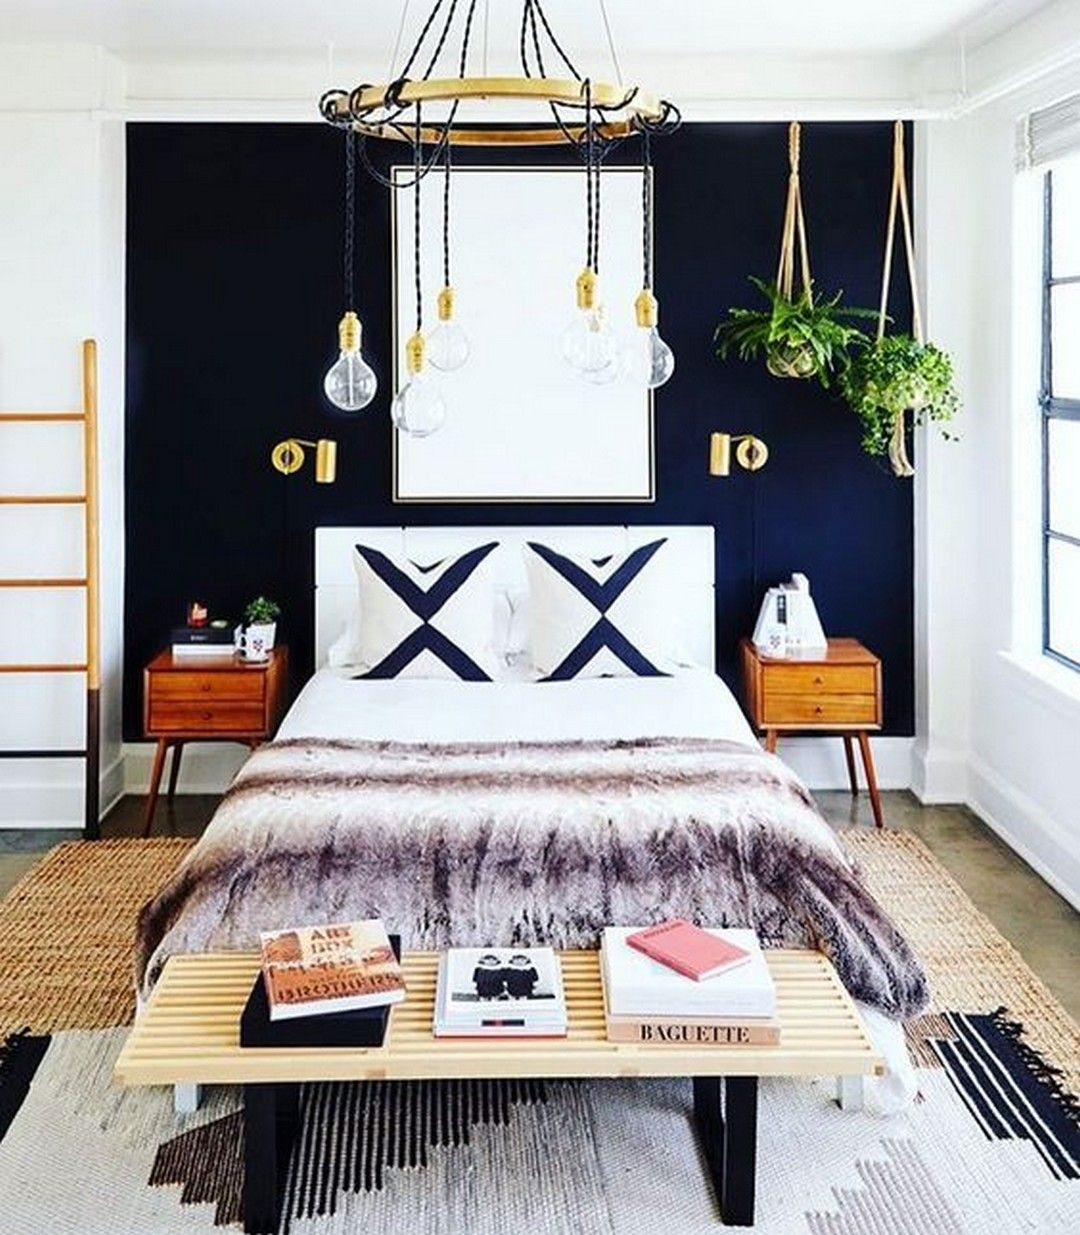 Modern Bedroom Decoration Ideas To Style Up Your Ordinary Bedroom